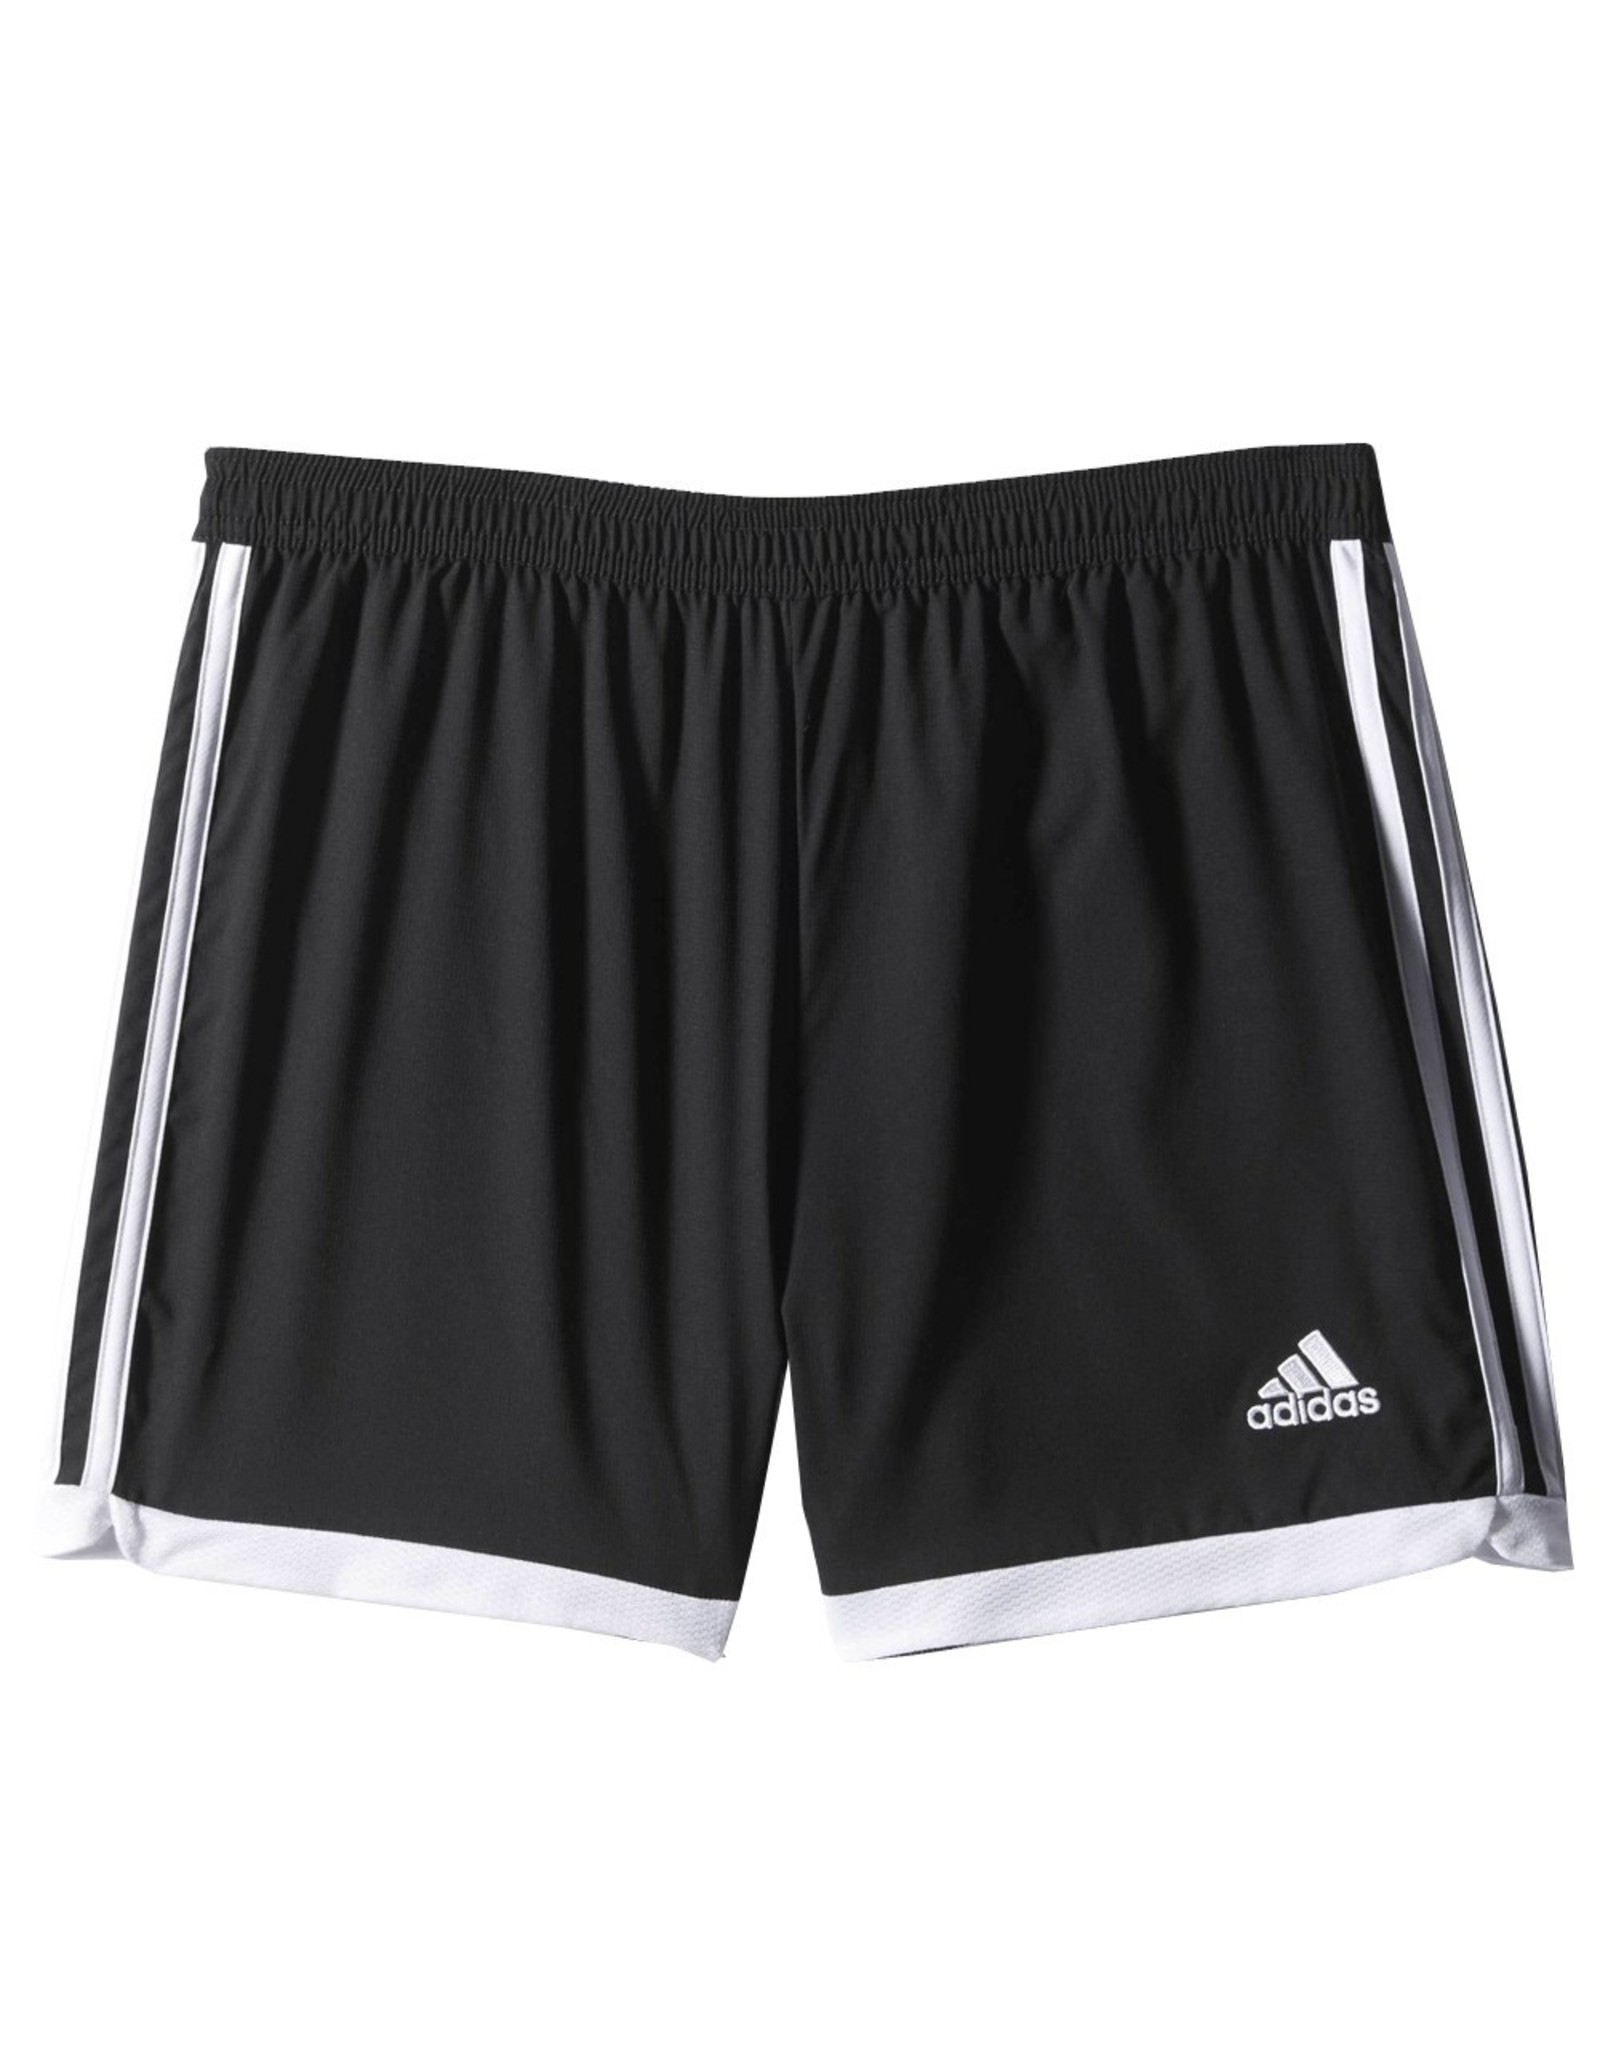 SHORT SOCCER ADDIDAS HOMME